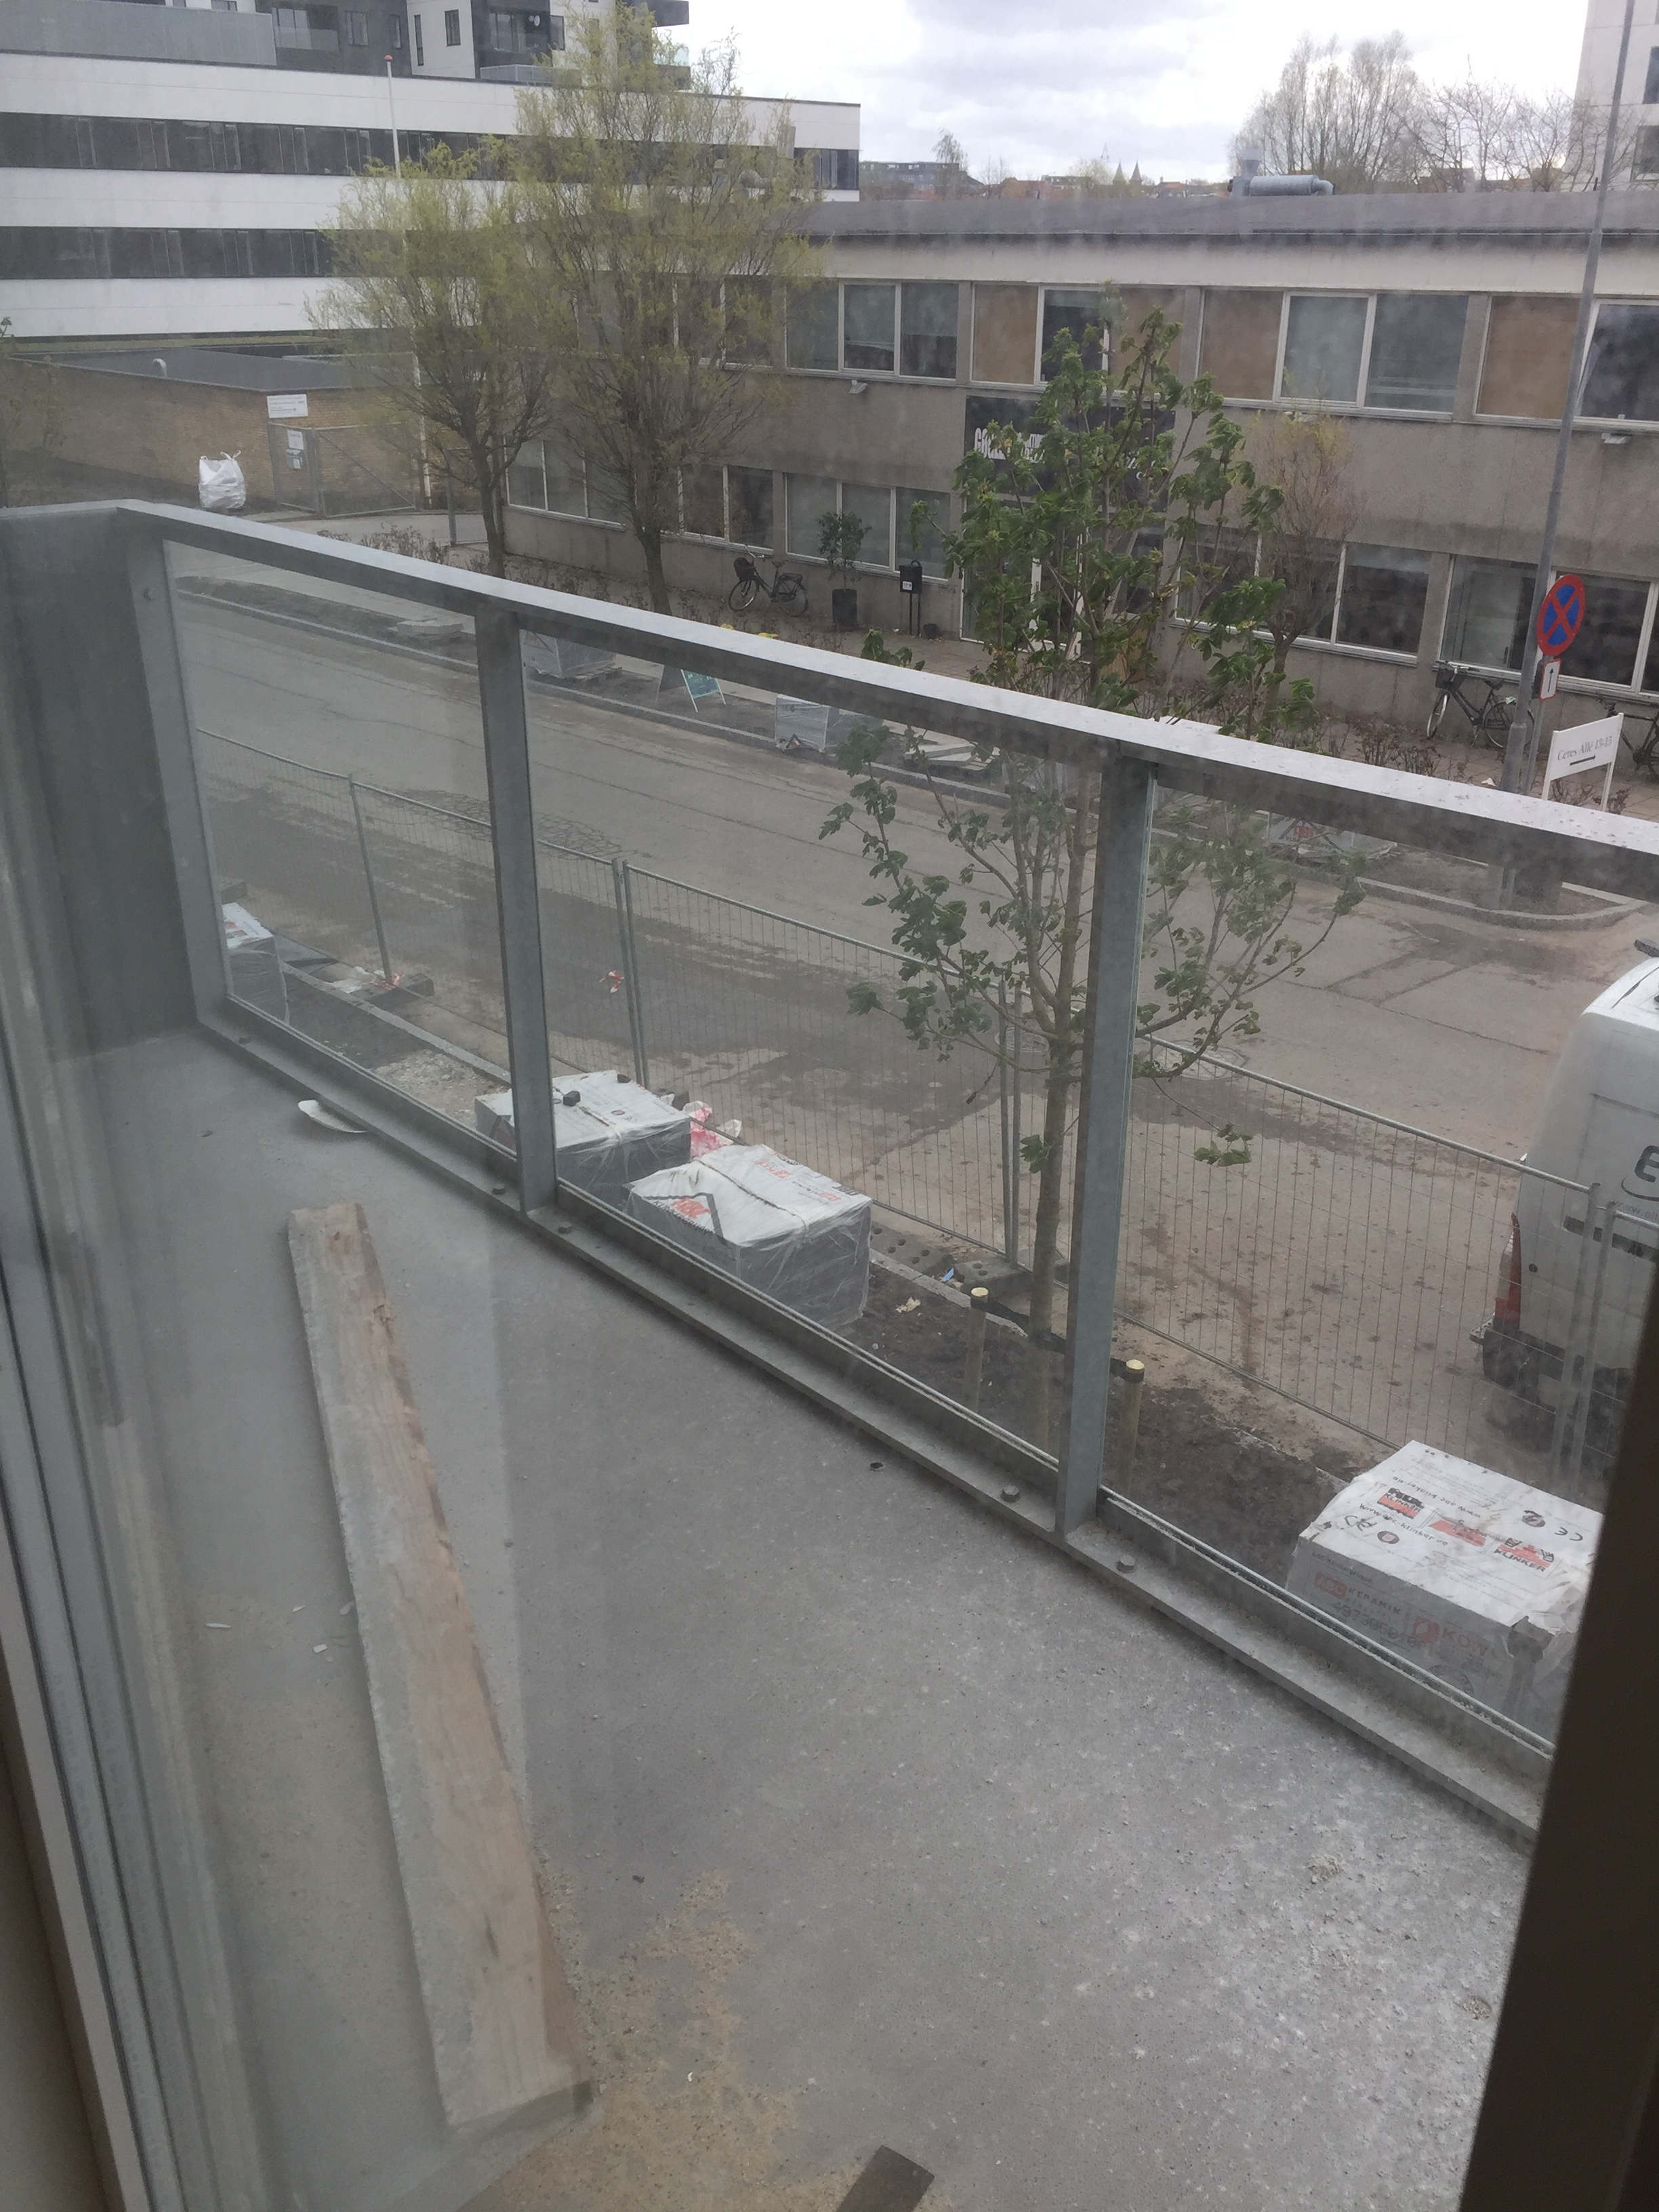 SEARCHING ROOMIE FOR LOOKING APARTMENT IN CERESBYEN 2.5 KM FROM AARHUS UNIVERSITY!